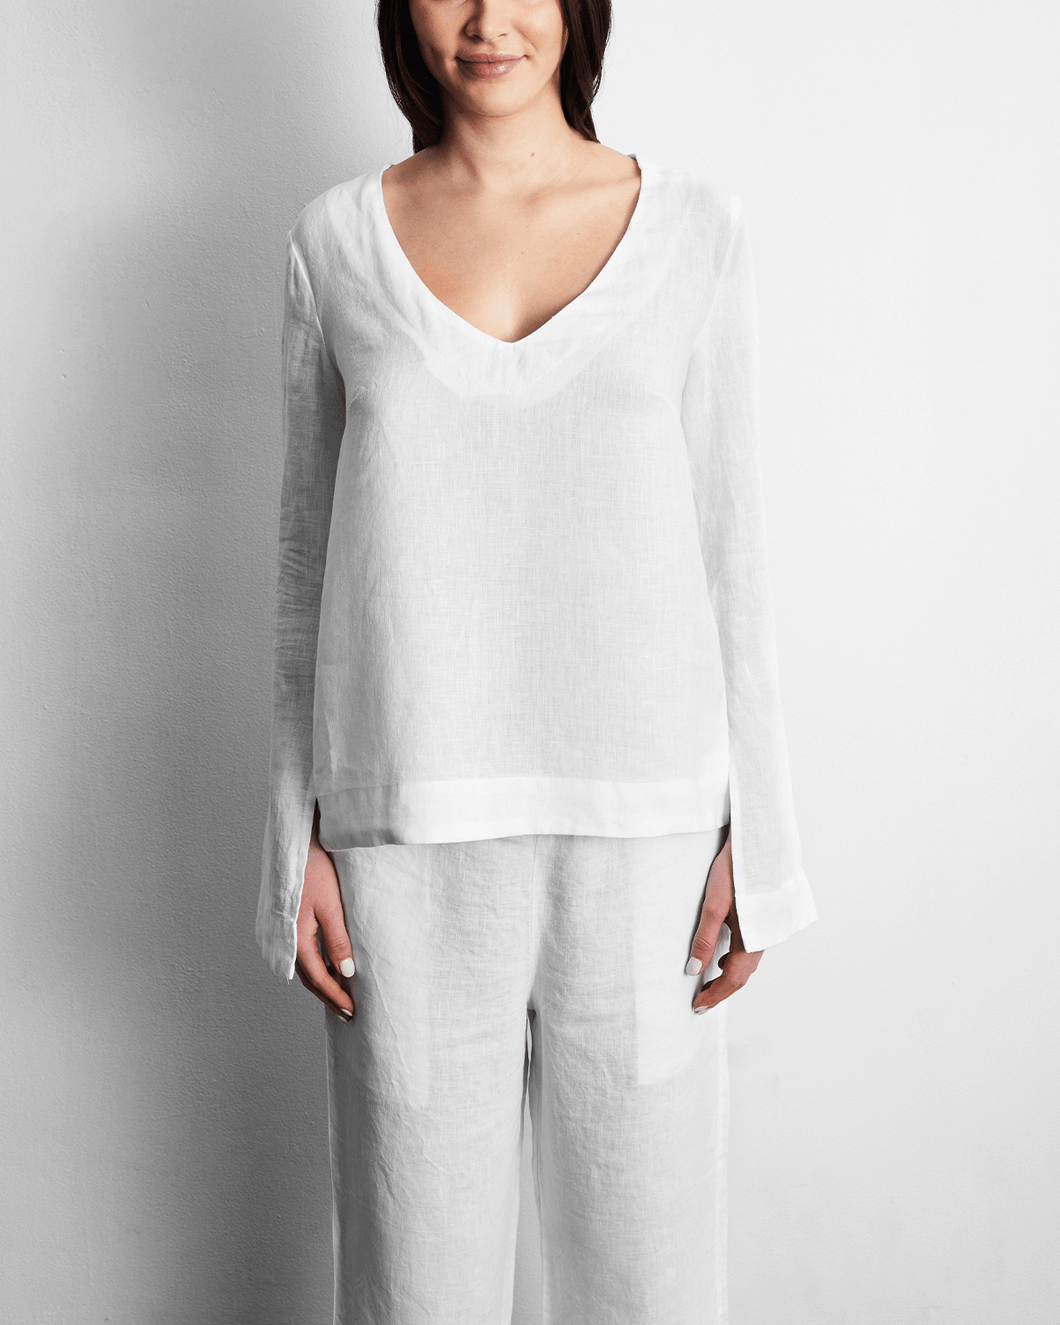 100% French Flax Linen Top in White